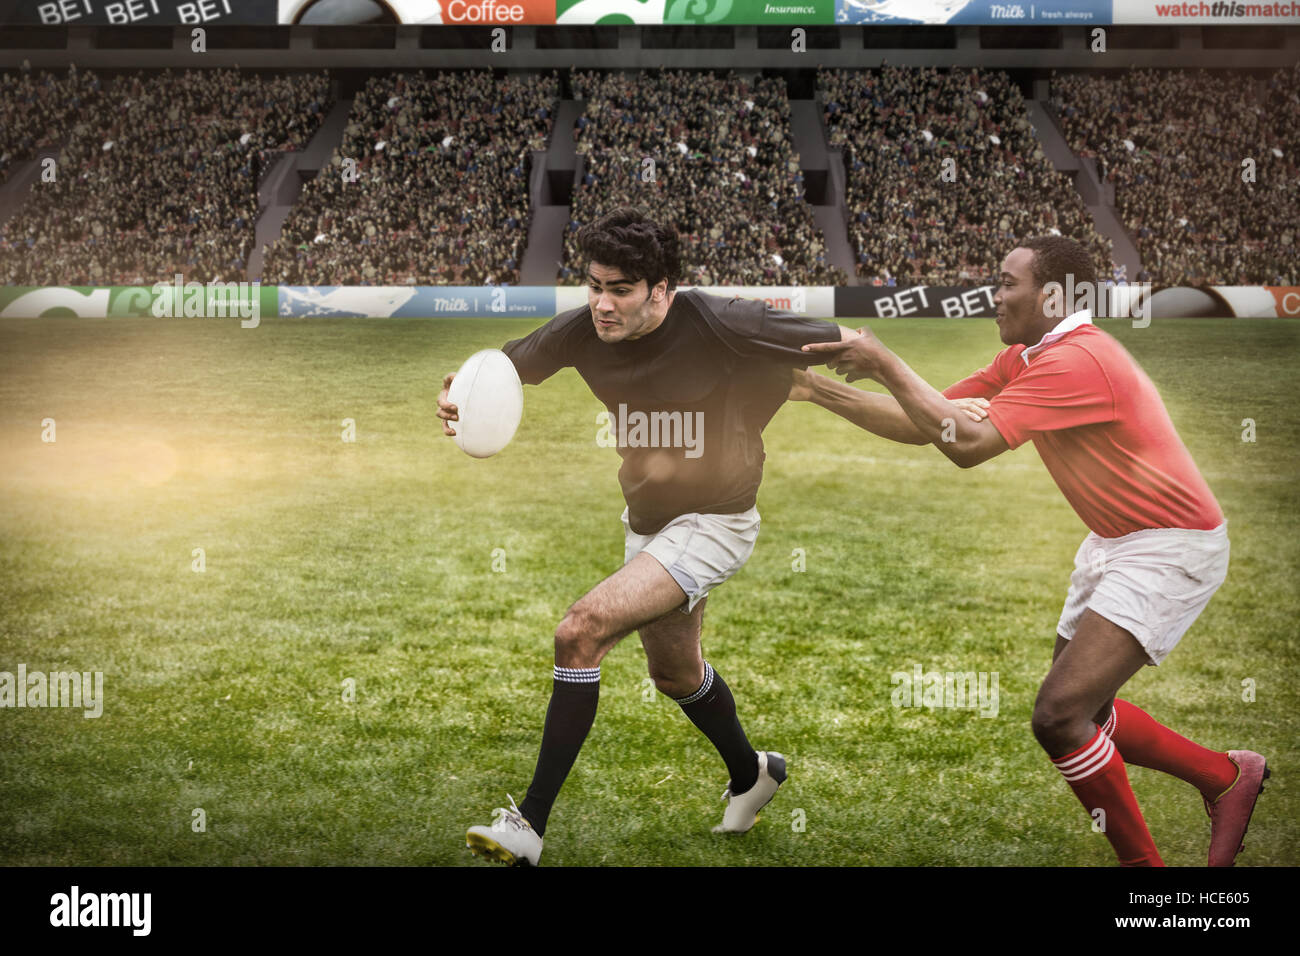 Composite image of rugby fans in arena - Stock Image